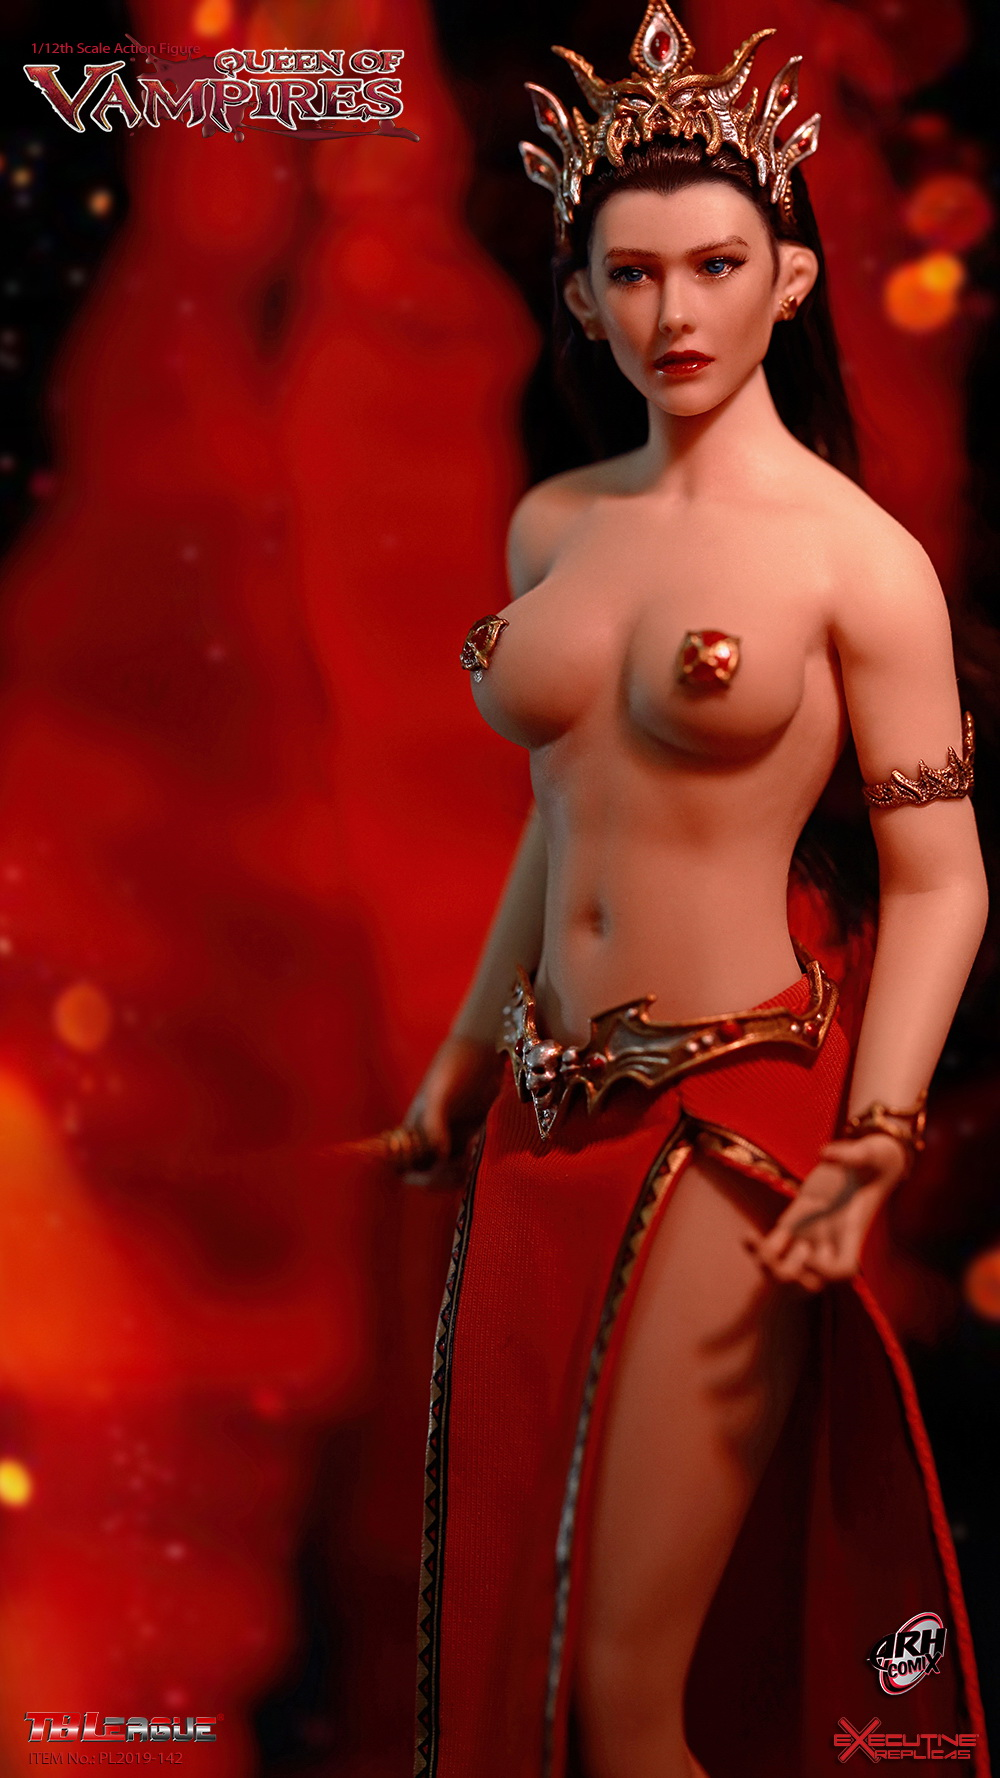 tbleague - NEW PRODUCT: TBLeague: The first 1/12 movable doll - Arkhalla Queen / Bloodsucking Queen (PL2019-142) 20002610